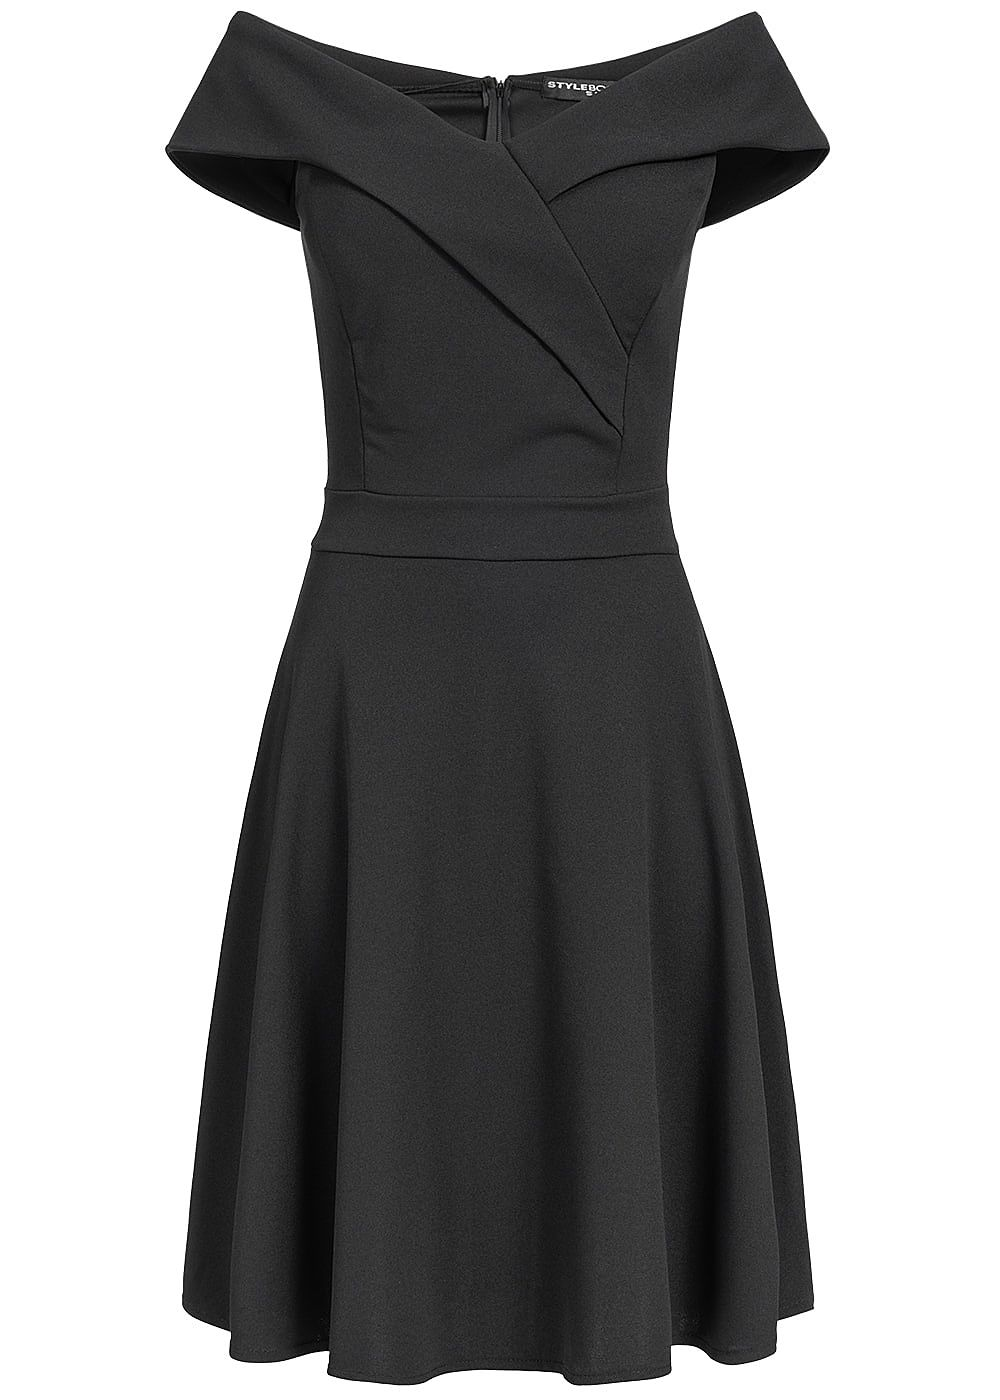 Styleboom Fashion Damen Off-Shoulder Dress schwarz - Art.-Nr.: 19026078